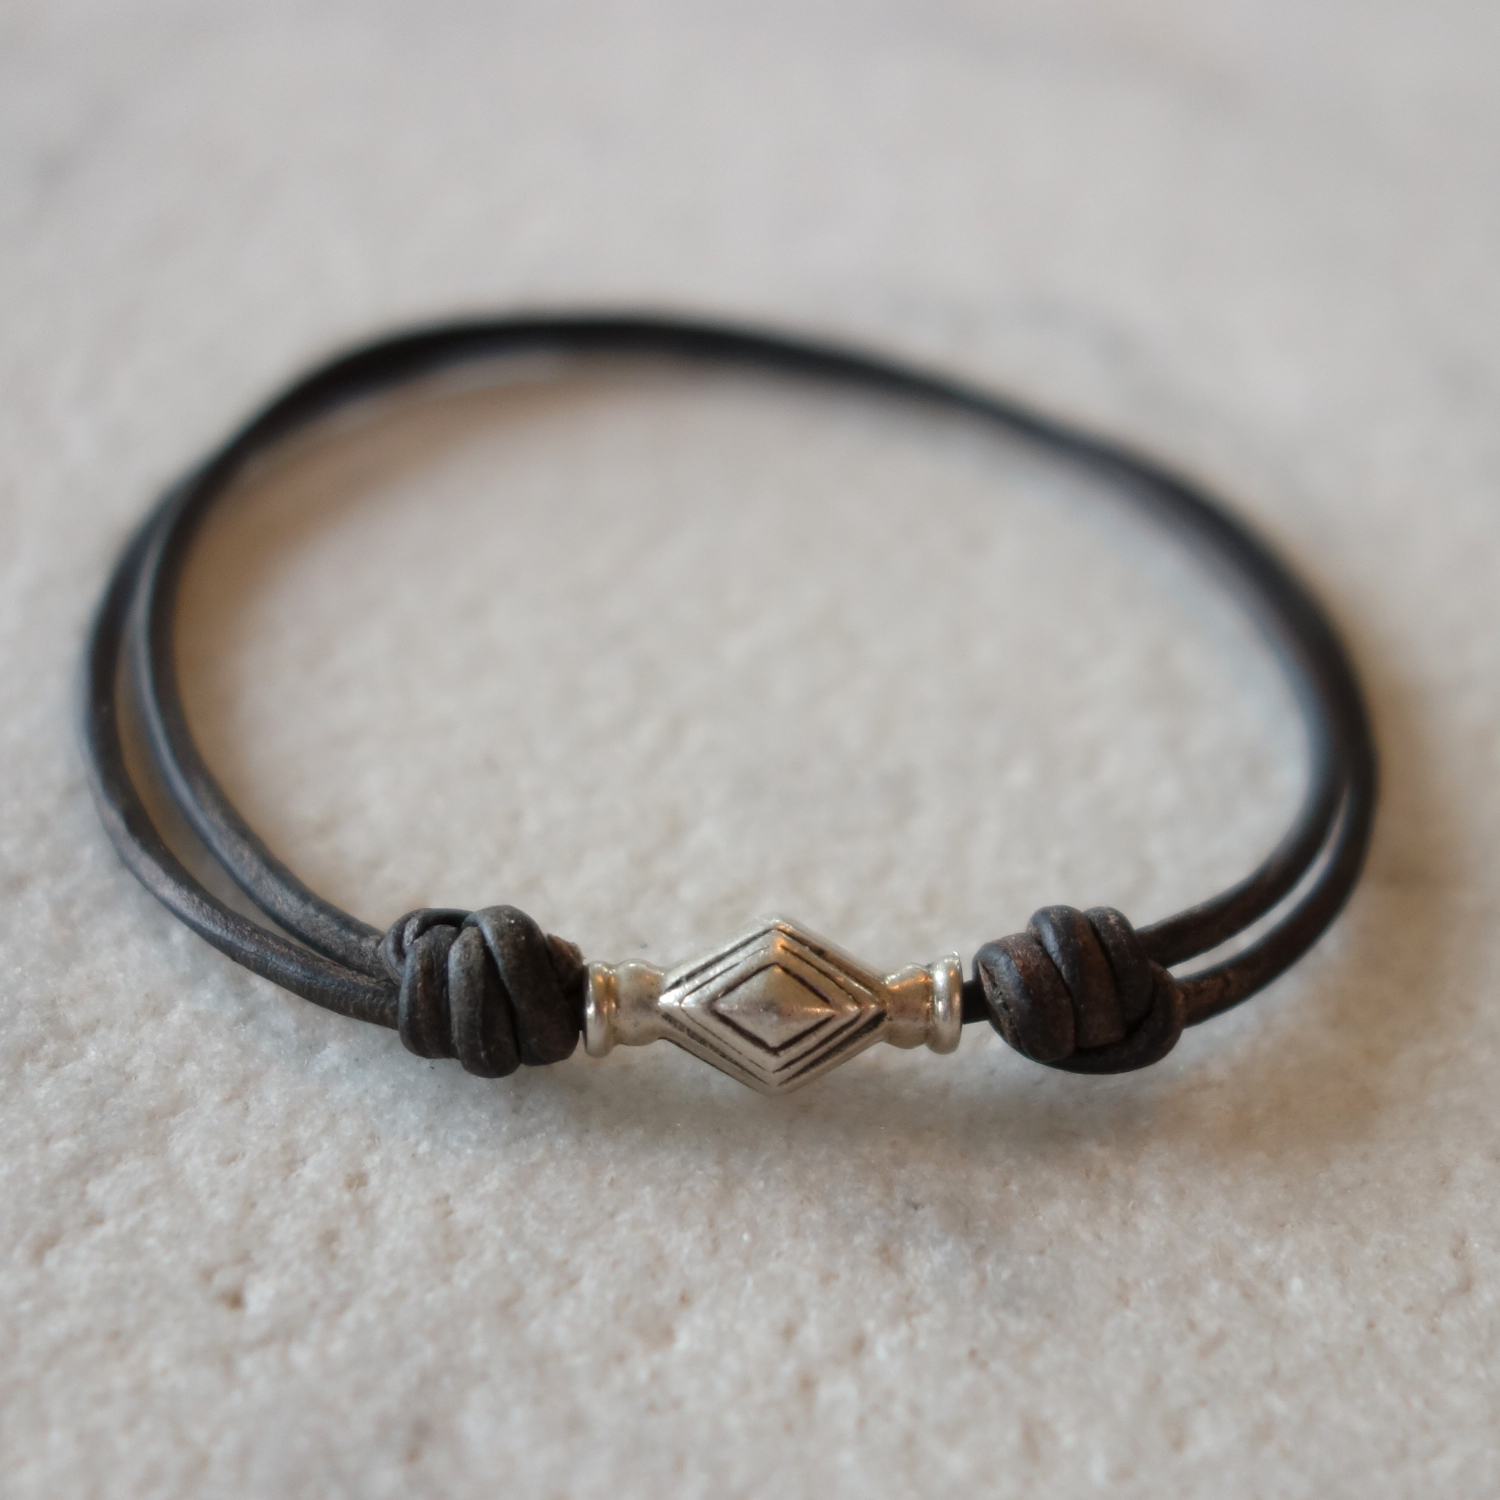 Thai silver bead and leather bracelet